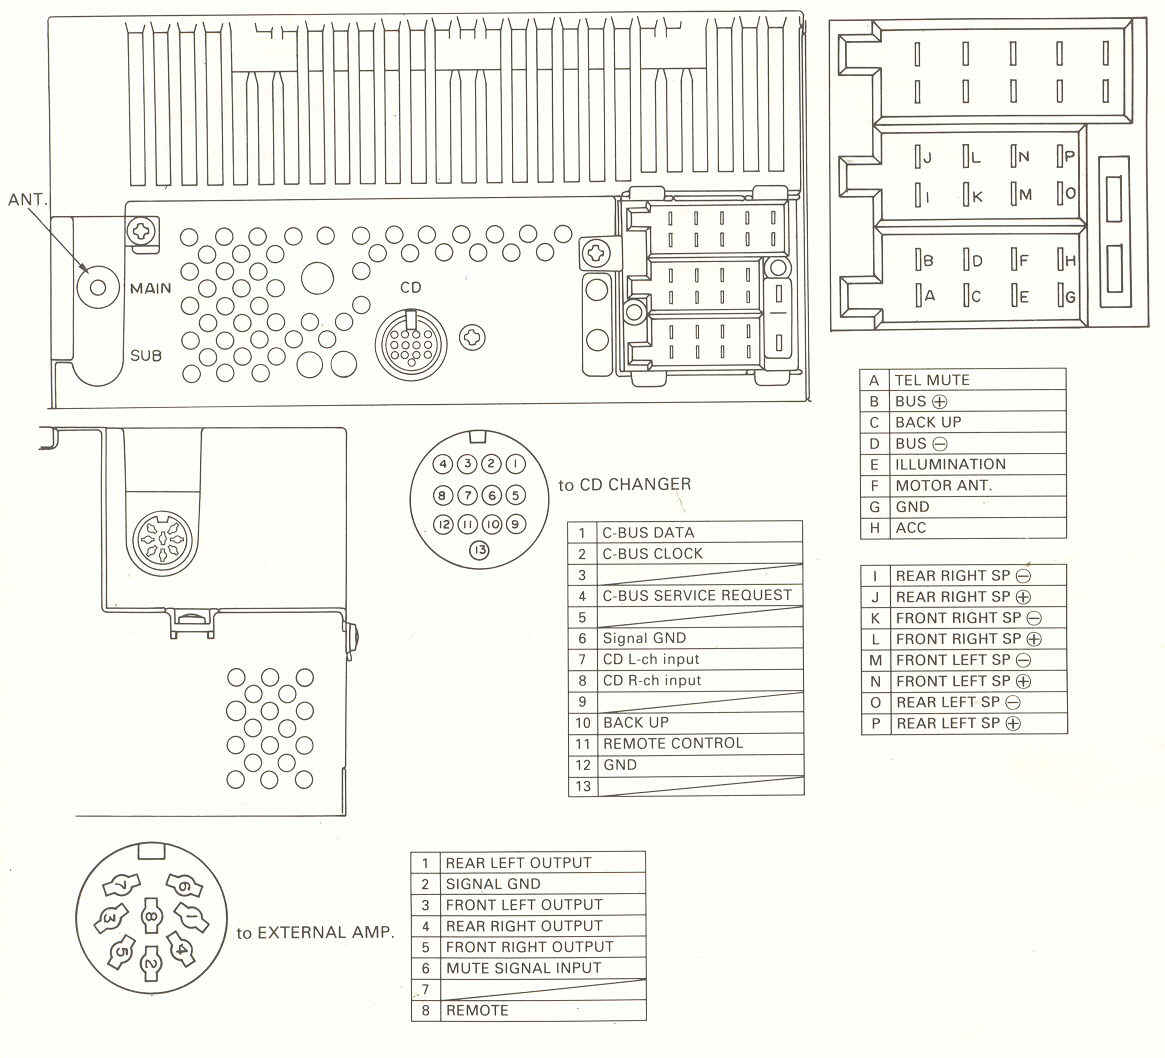 Saab car stereo wiring harness pinout connector wire saab 9 5 wiring diagram stereo wiring diagram and schematic design saab 9-5 wiring diagram pdf at creativeand.co